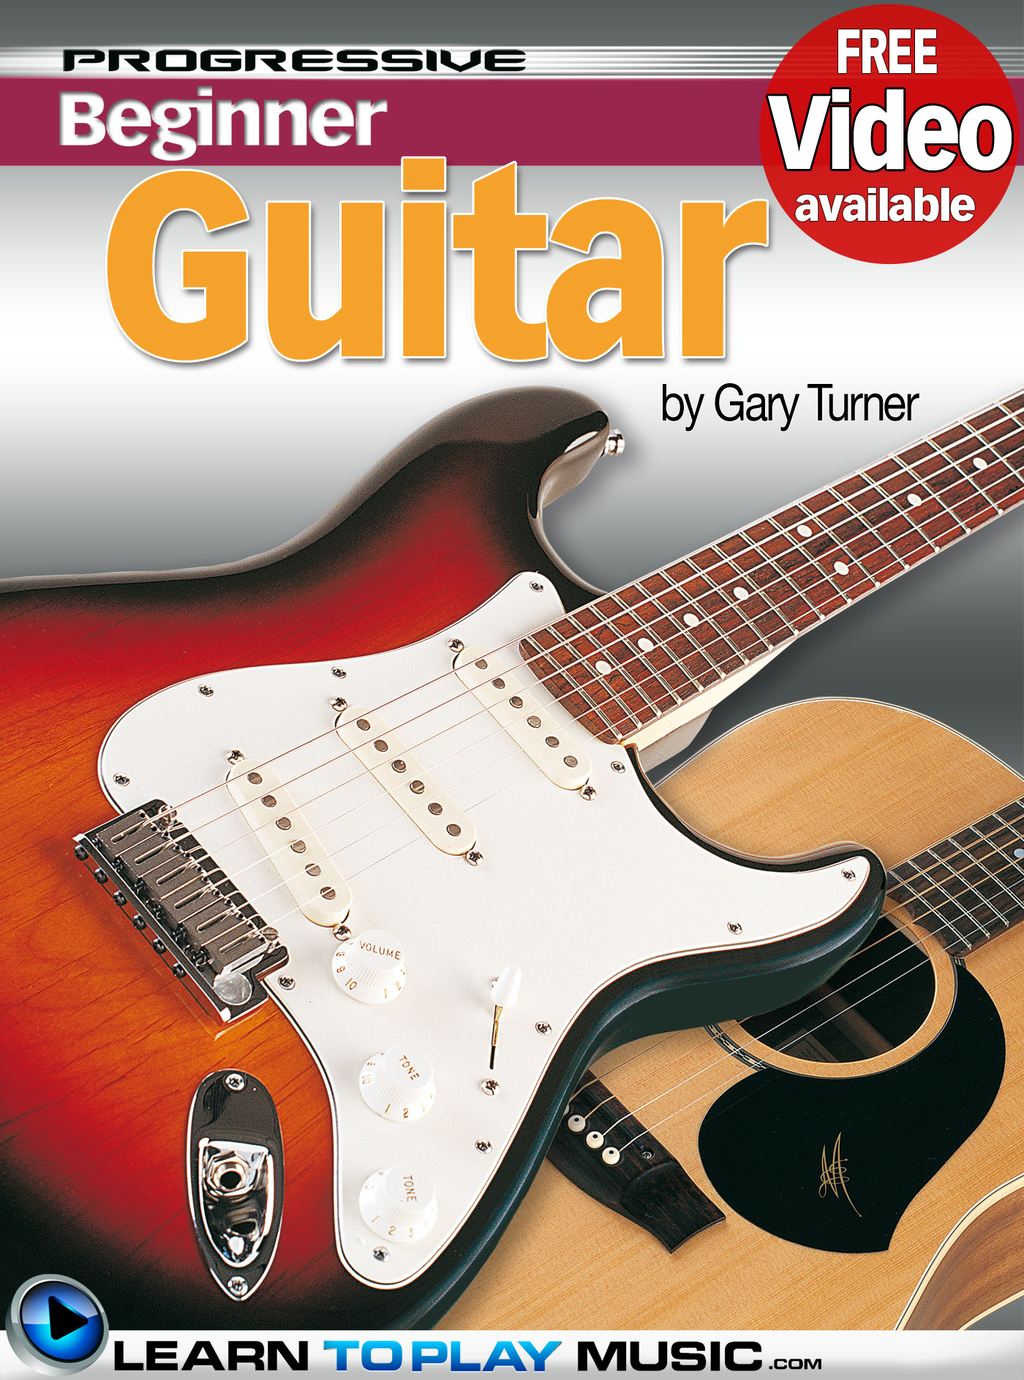 Beginner Guitar Lessons - Progressive